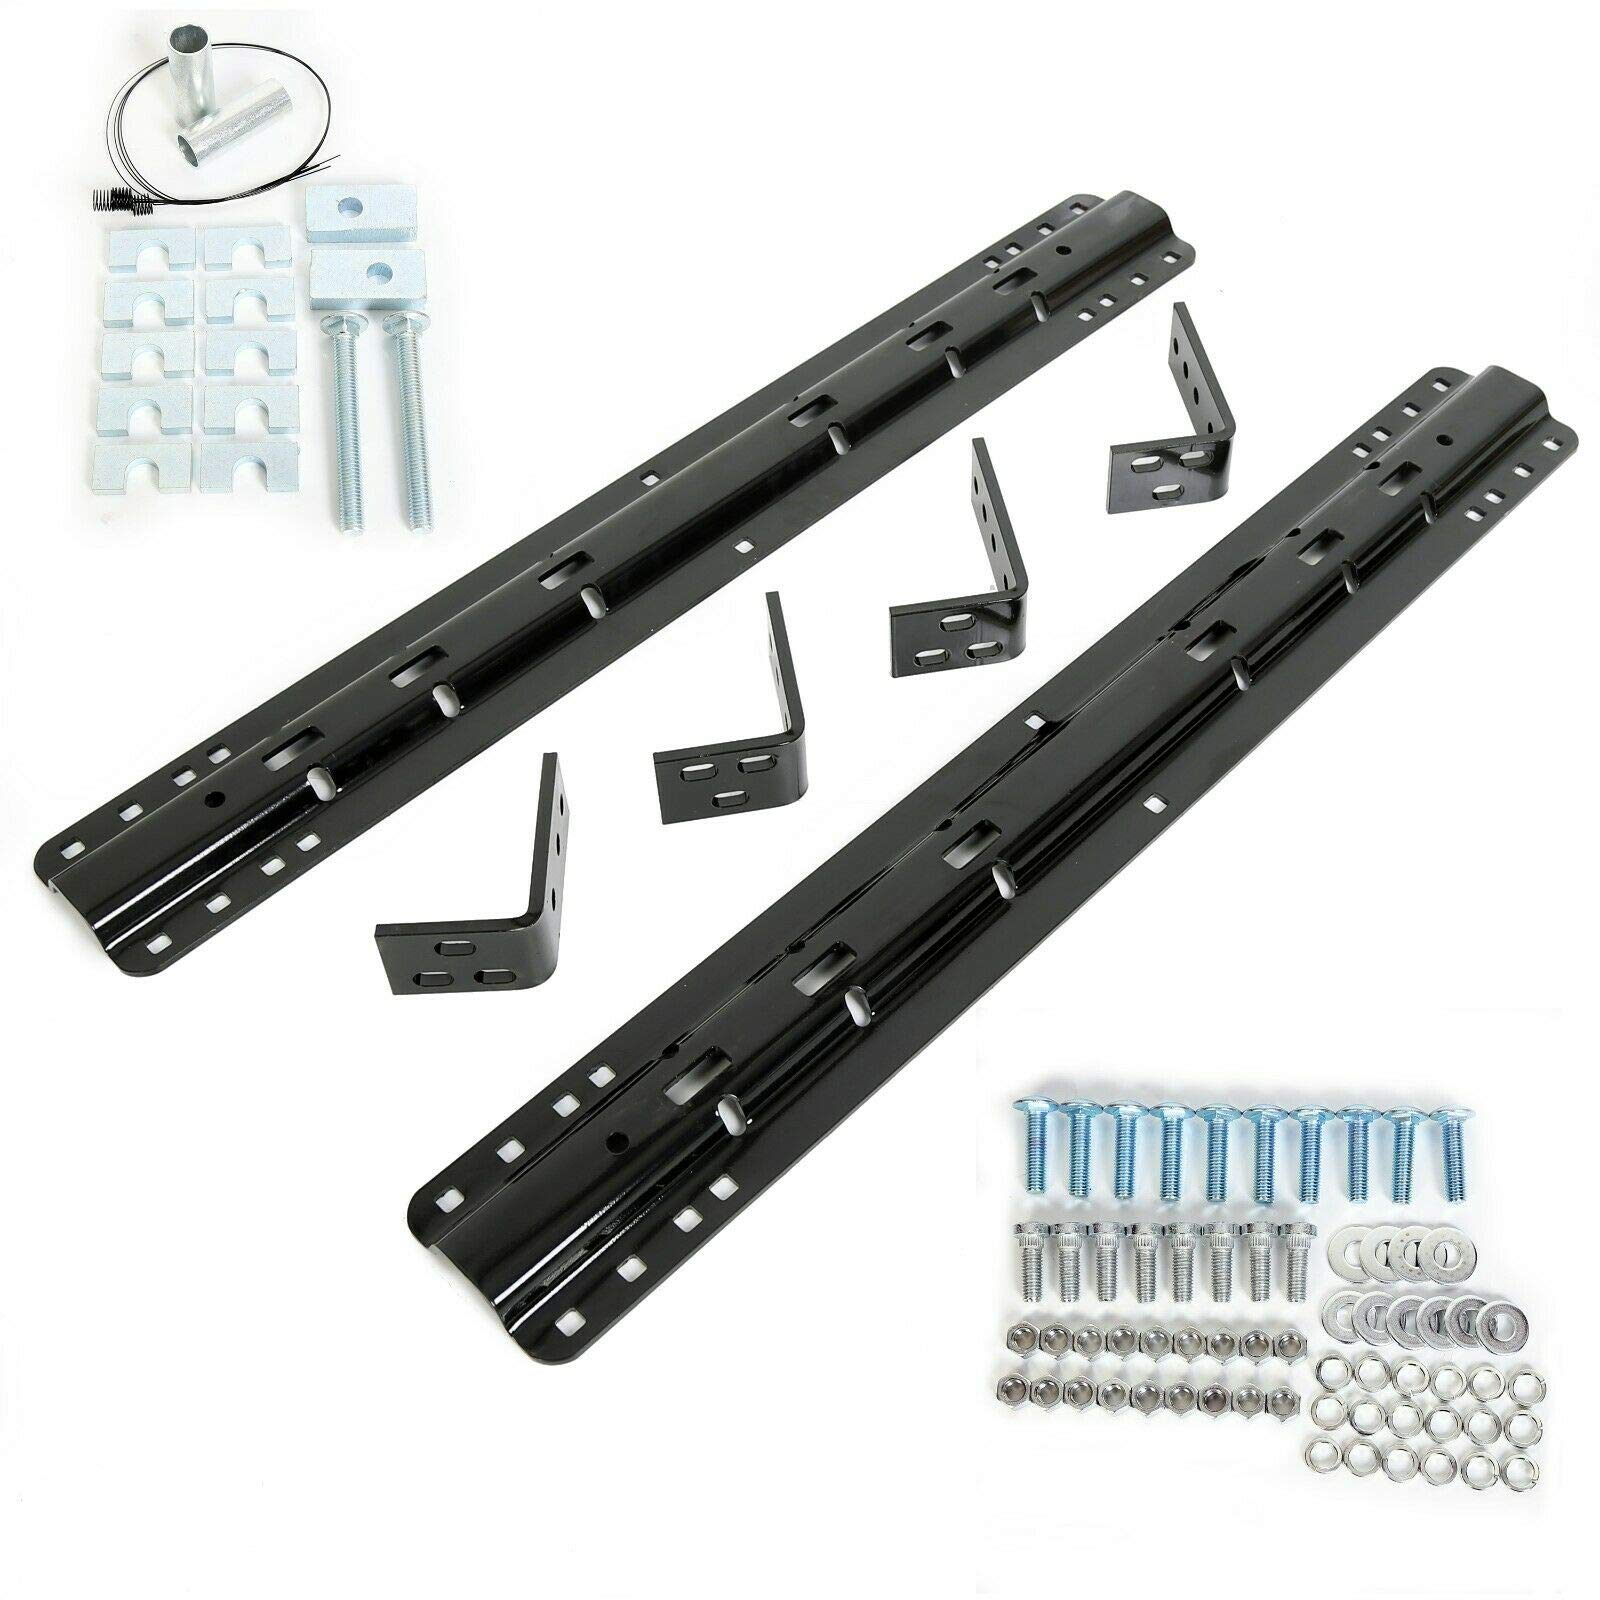 Foundation Deals for Gooseneck/Fifth Wheel Trailer Hitch Base Rail Kit & Installation Kit 30035 by Foundation Deals